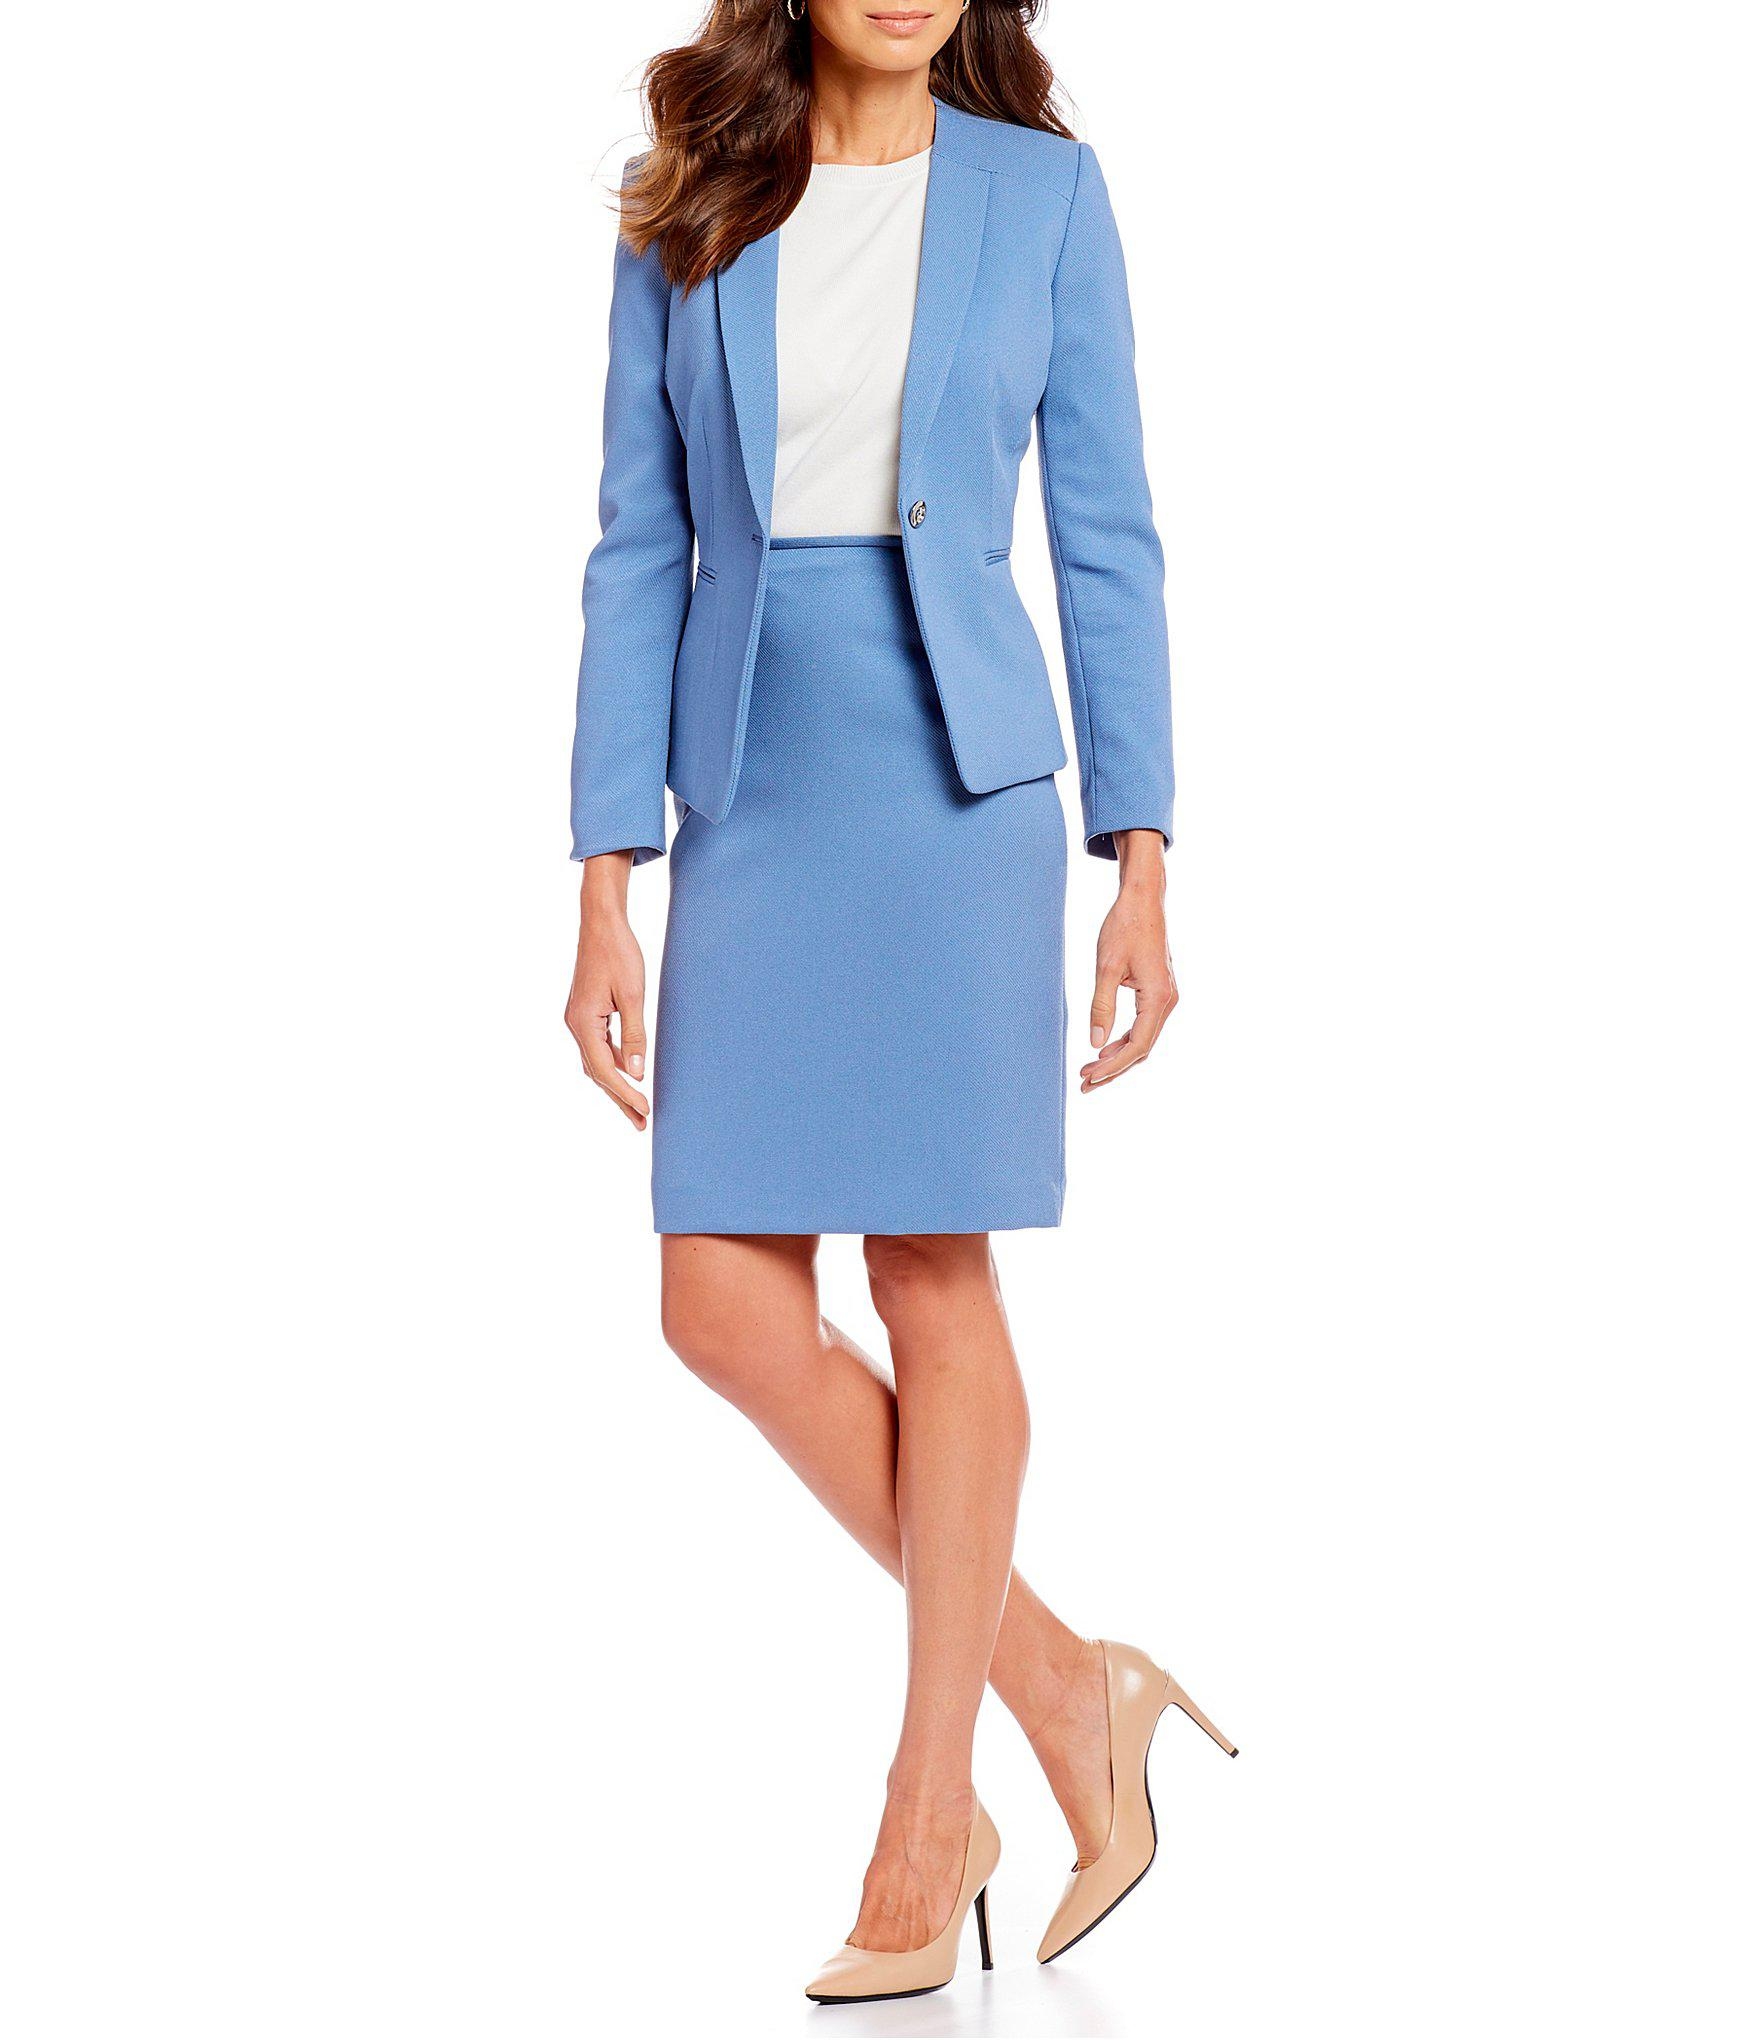 894507a458c Tahari Twill Skirt Suit With Collarless Jacket in Blue - Lyst